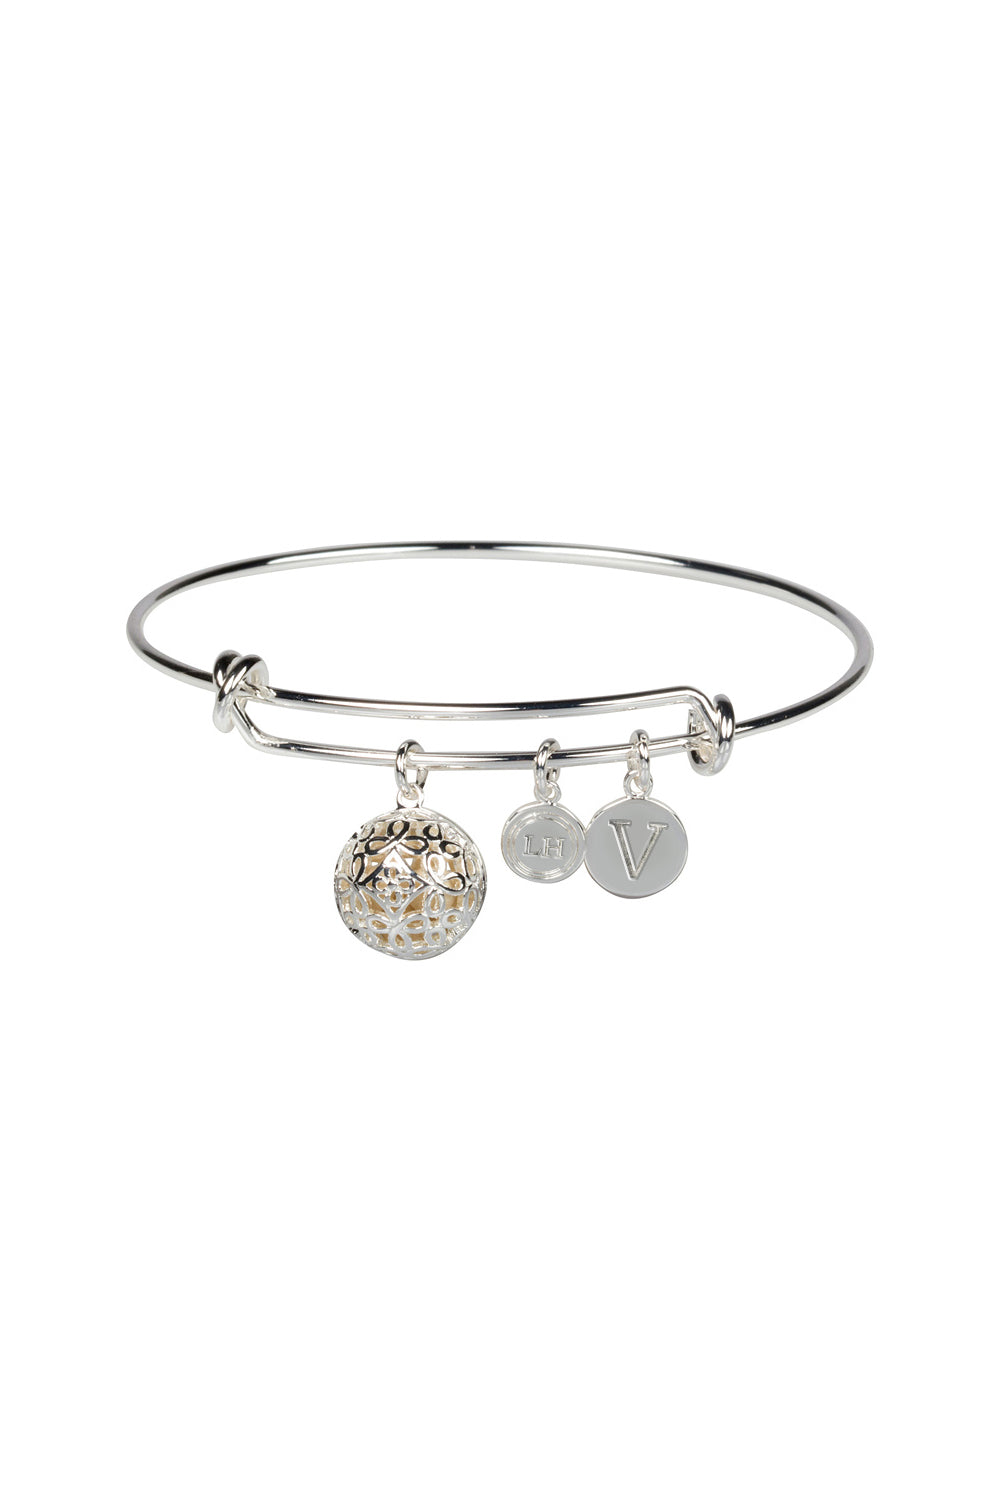 """V"" Initial Fragrance Bangle with Silver Tone Charm"